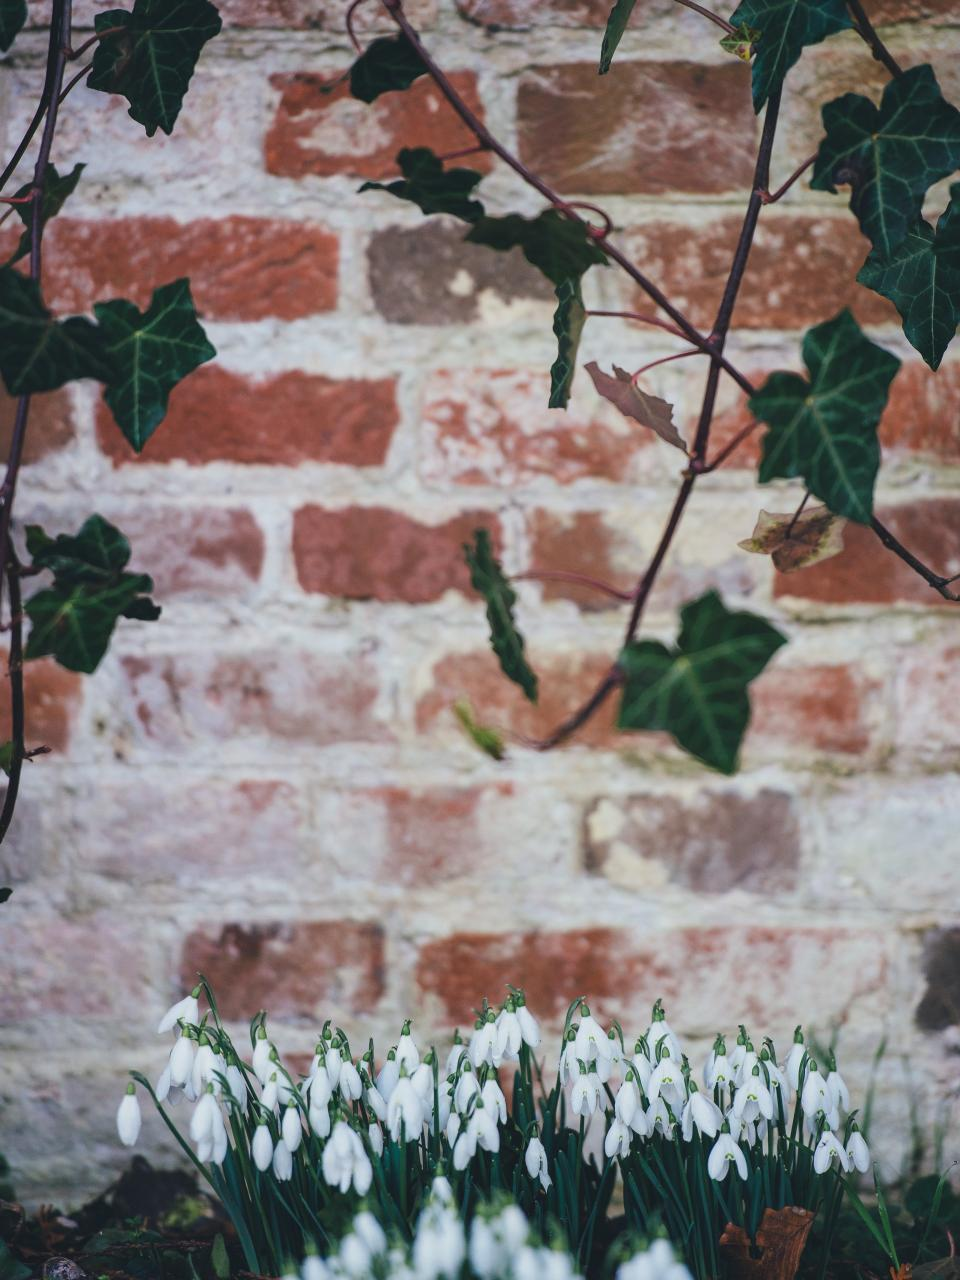 plants, flower, tulips, garden, leaves, soil, petal, wall, concrete, bricks, branch